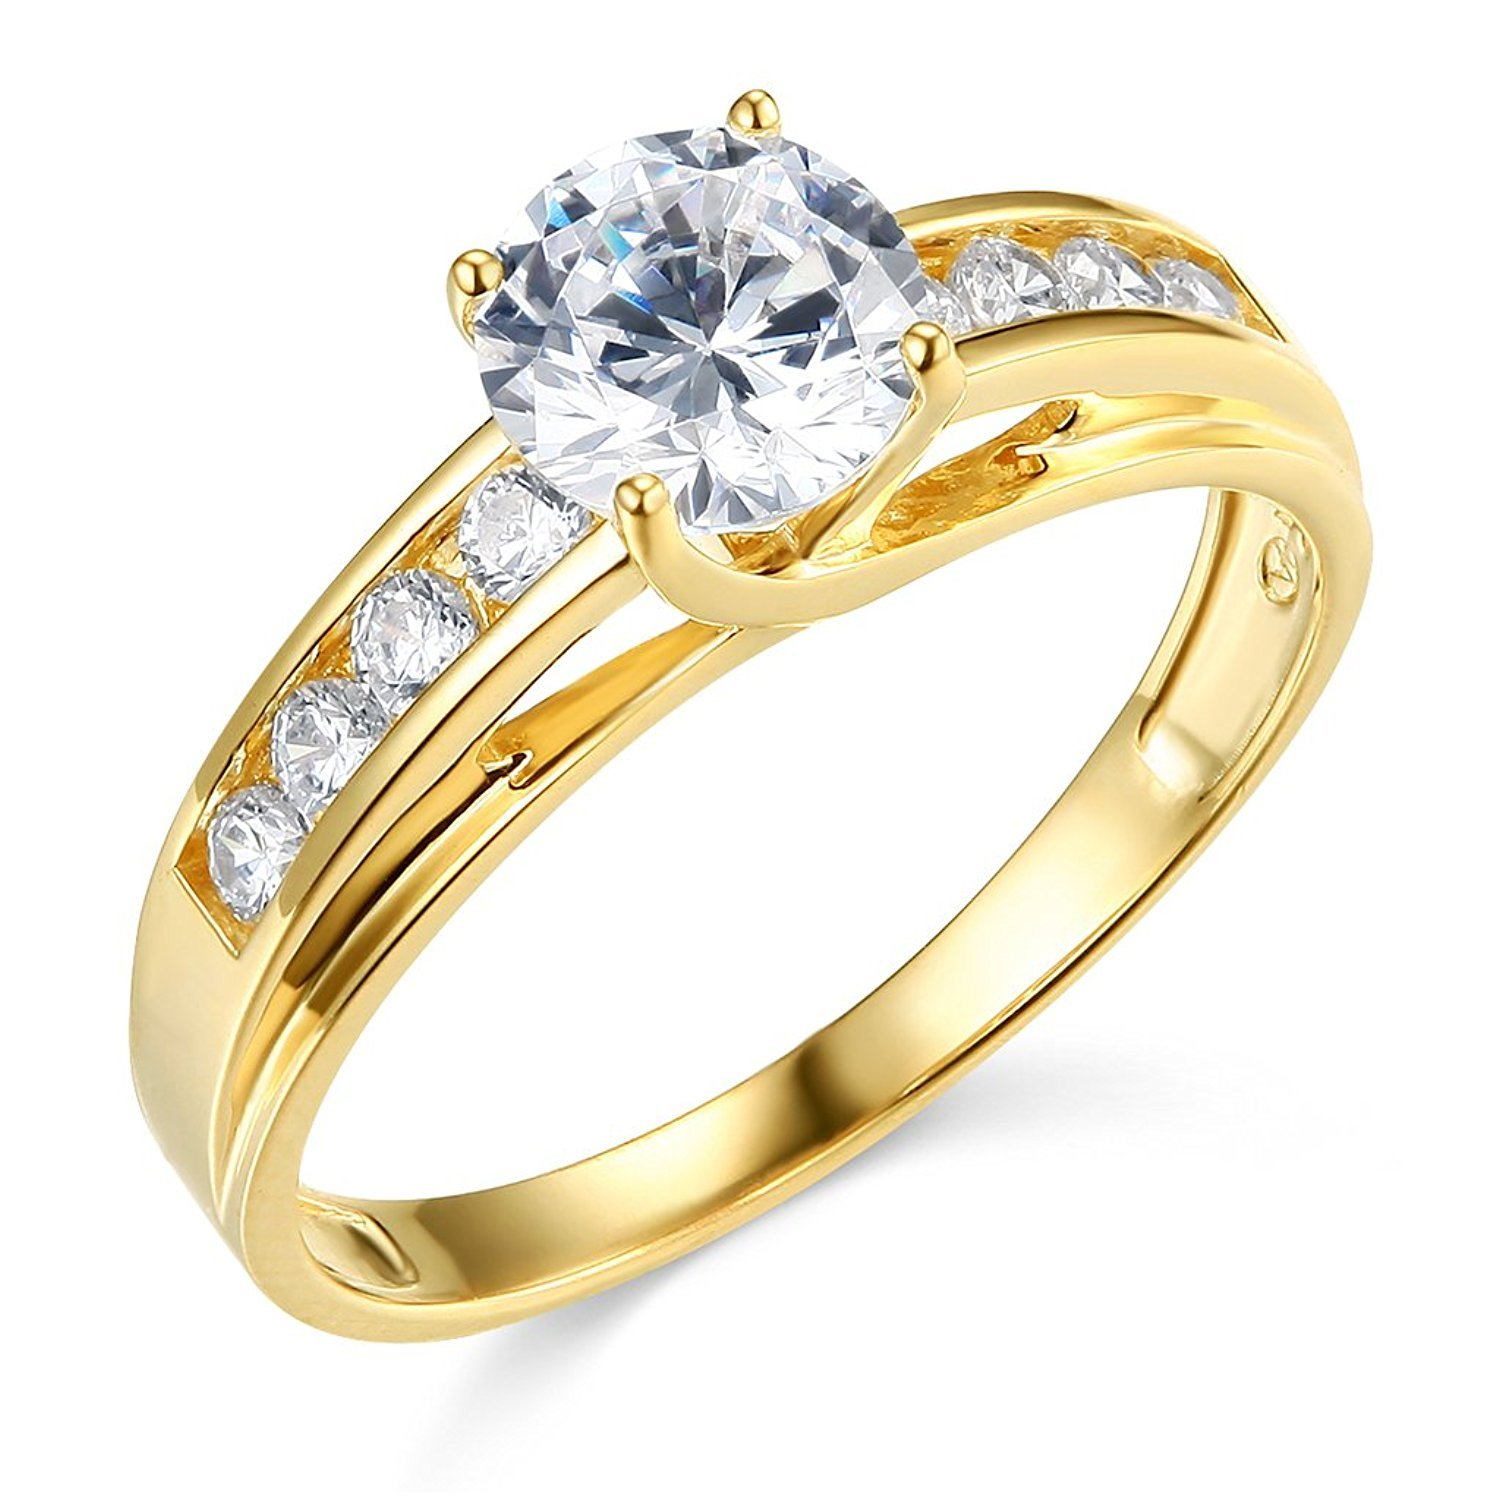 Decatur Diamond District 14k Yellow or White Gold Engagement rings for women